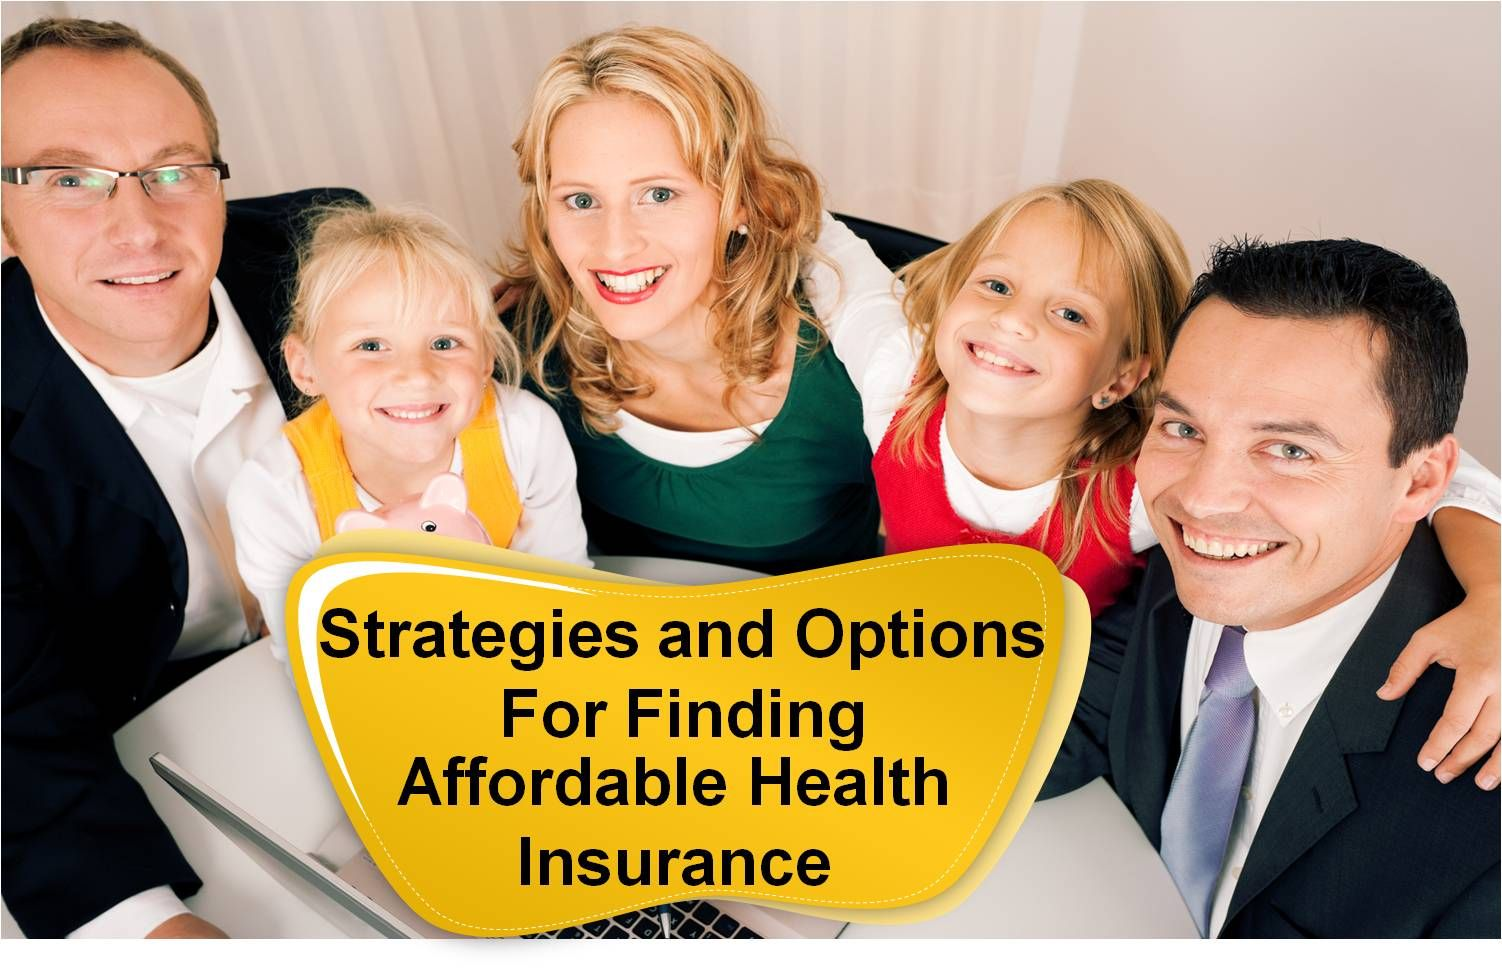 Strategies And Options For Finding Affordable Health Insurance